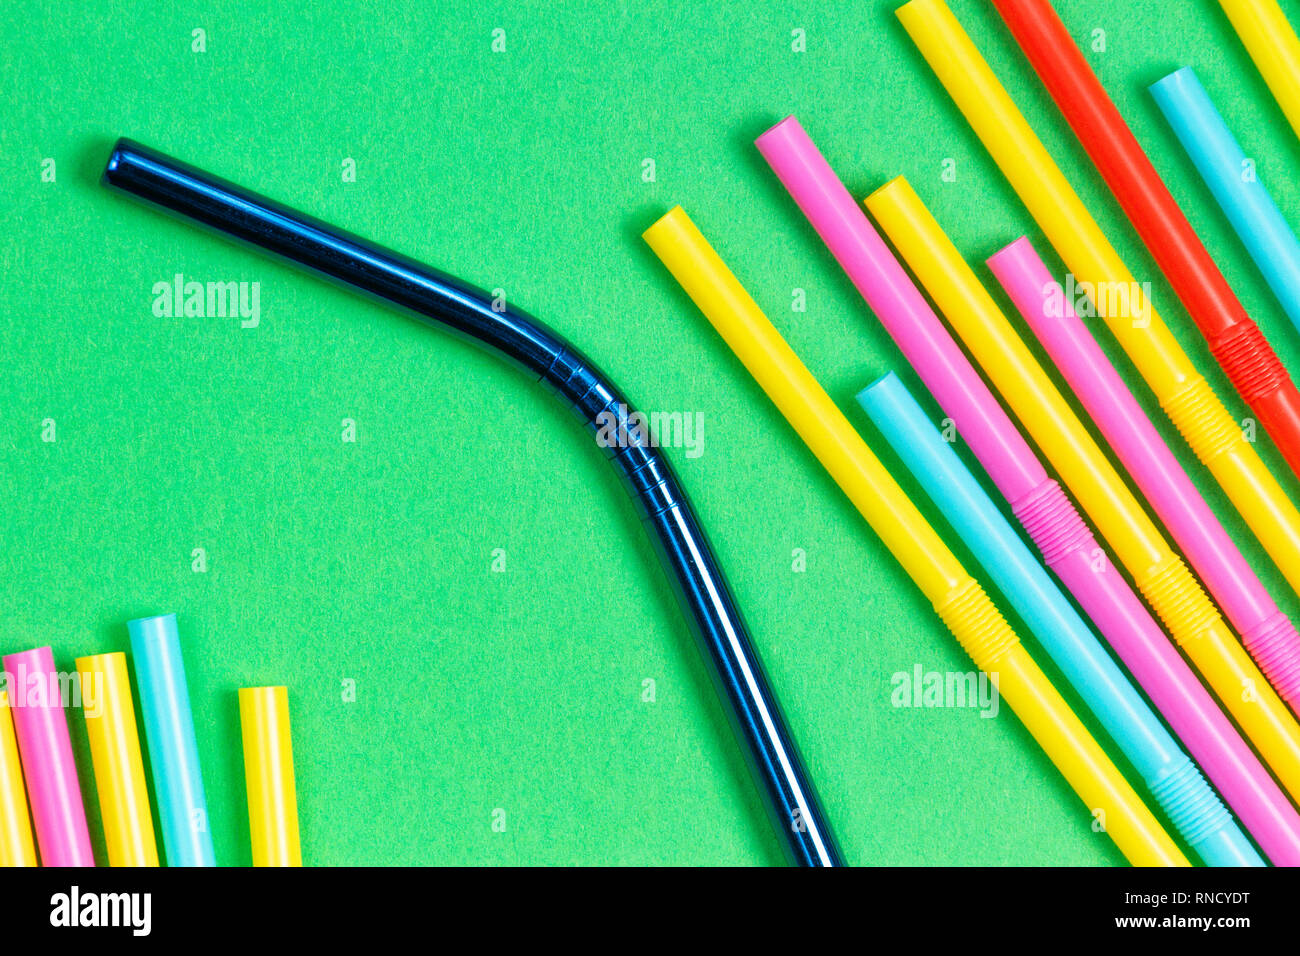 Stainless steel reusable drinking straw with plastic straws on green background - Stock Image